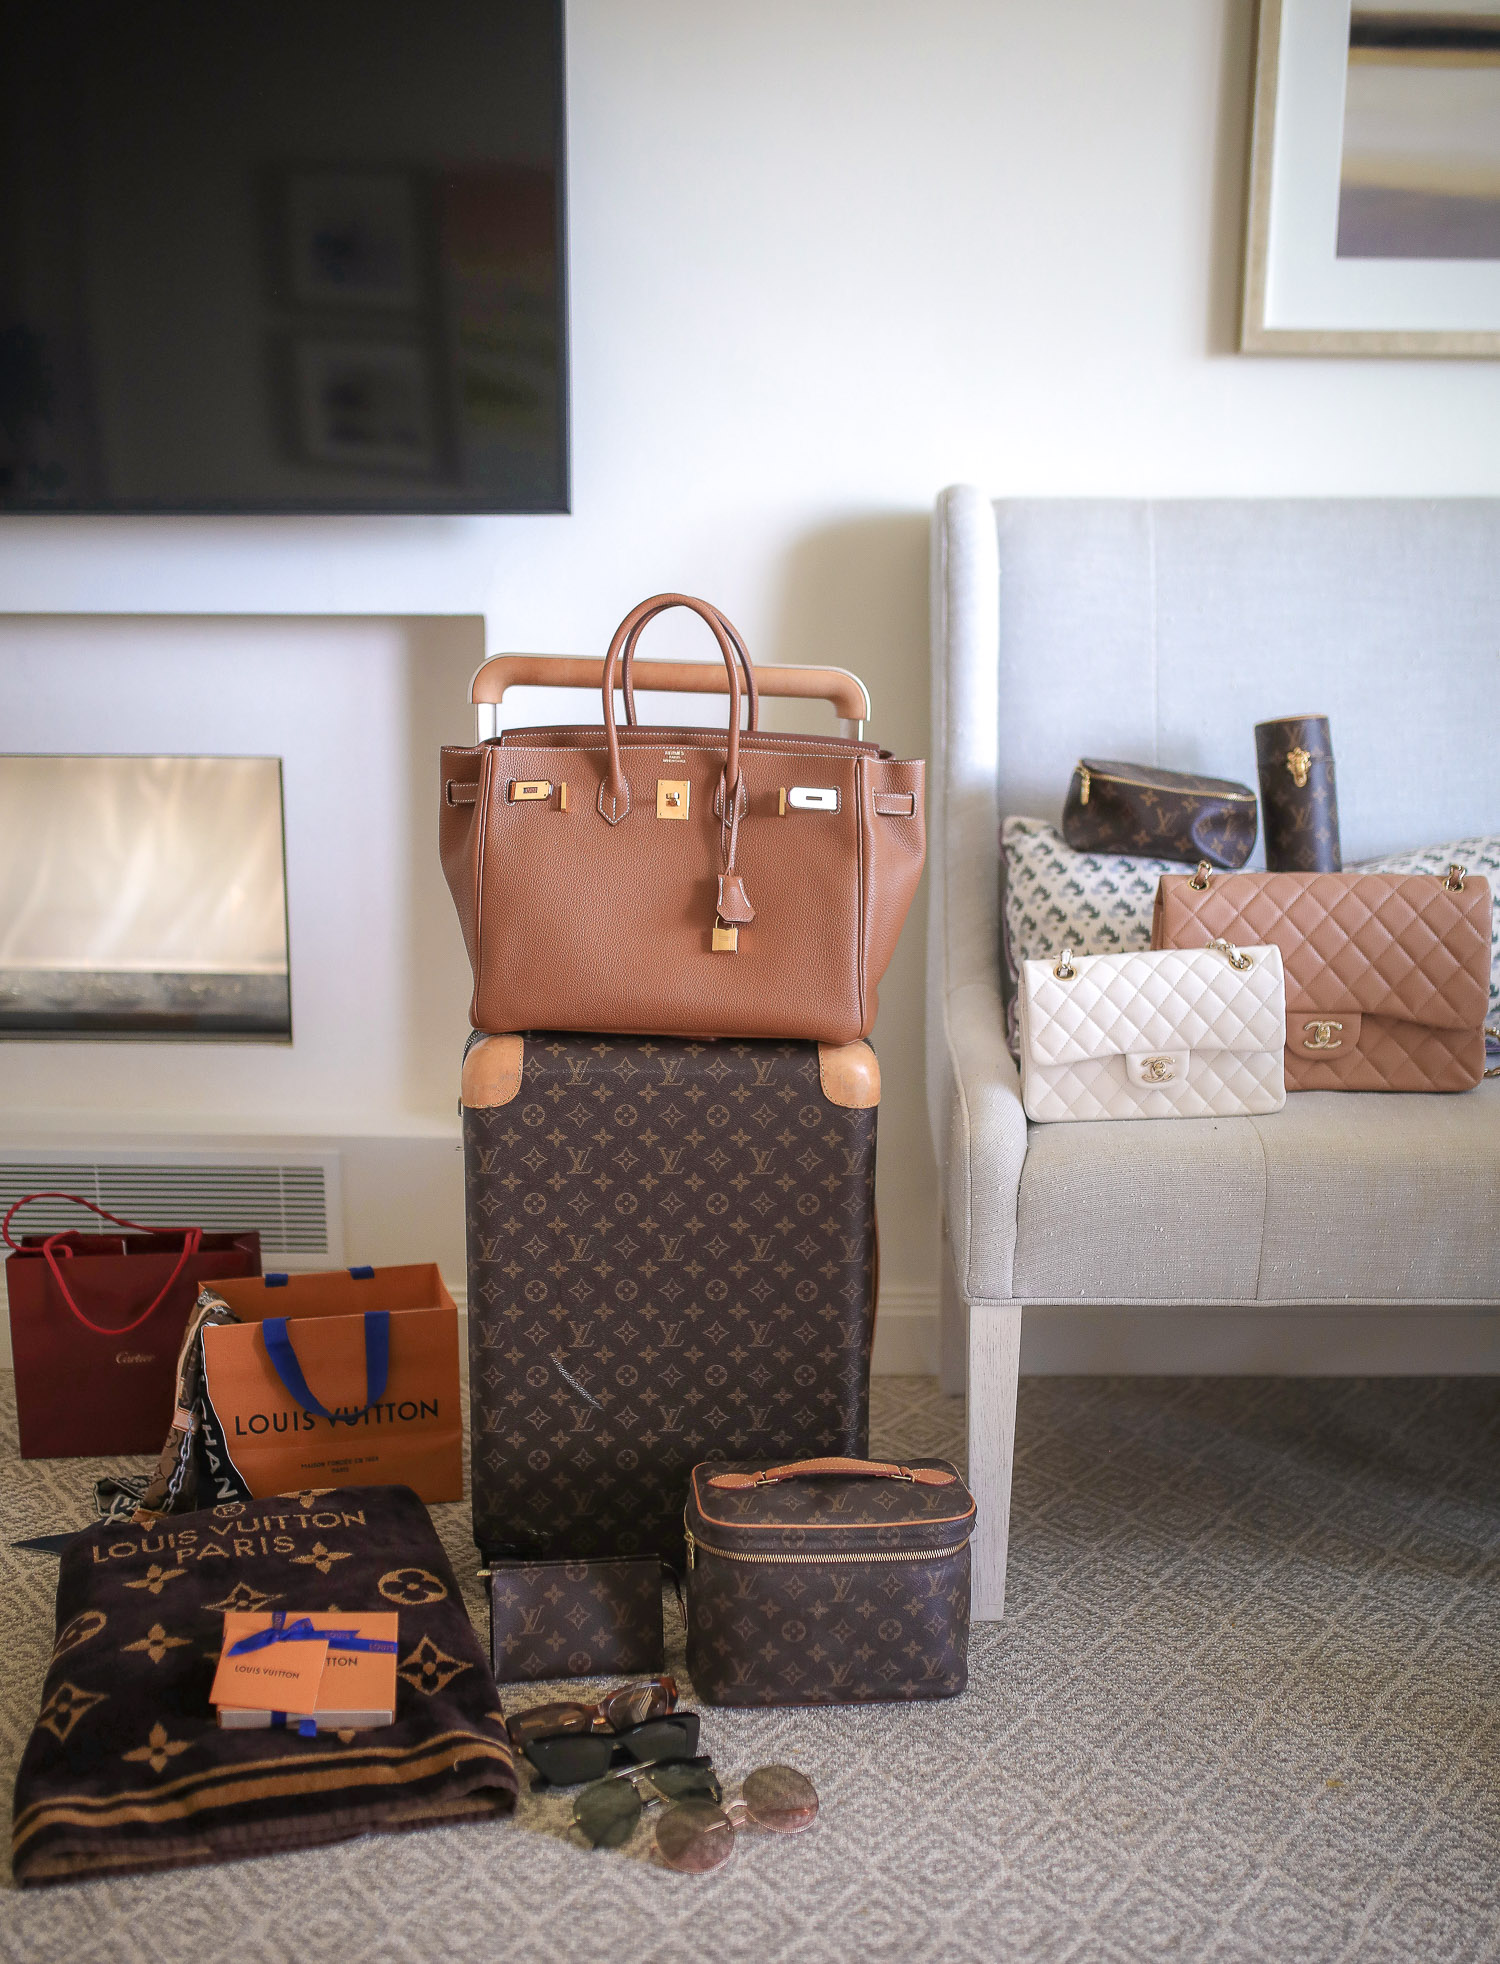 Louis Vuitton Horizon 55 carry on, Hermes berkin 35 tan gold hardware, Louis Vuitton beach towel, Emily Gemma | Travel Hacks by popular life and style blog, The Sweetest Thing: image of Louis Vuitton luggage, Louis Vuitton blanket, Louis Vuitton makeup bag, Chanel purses, and designer sunglasses.